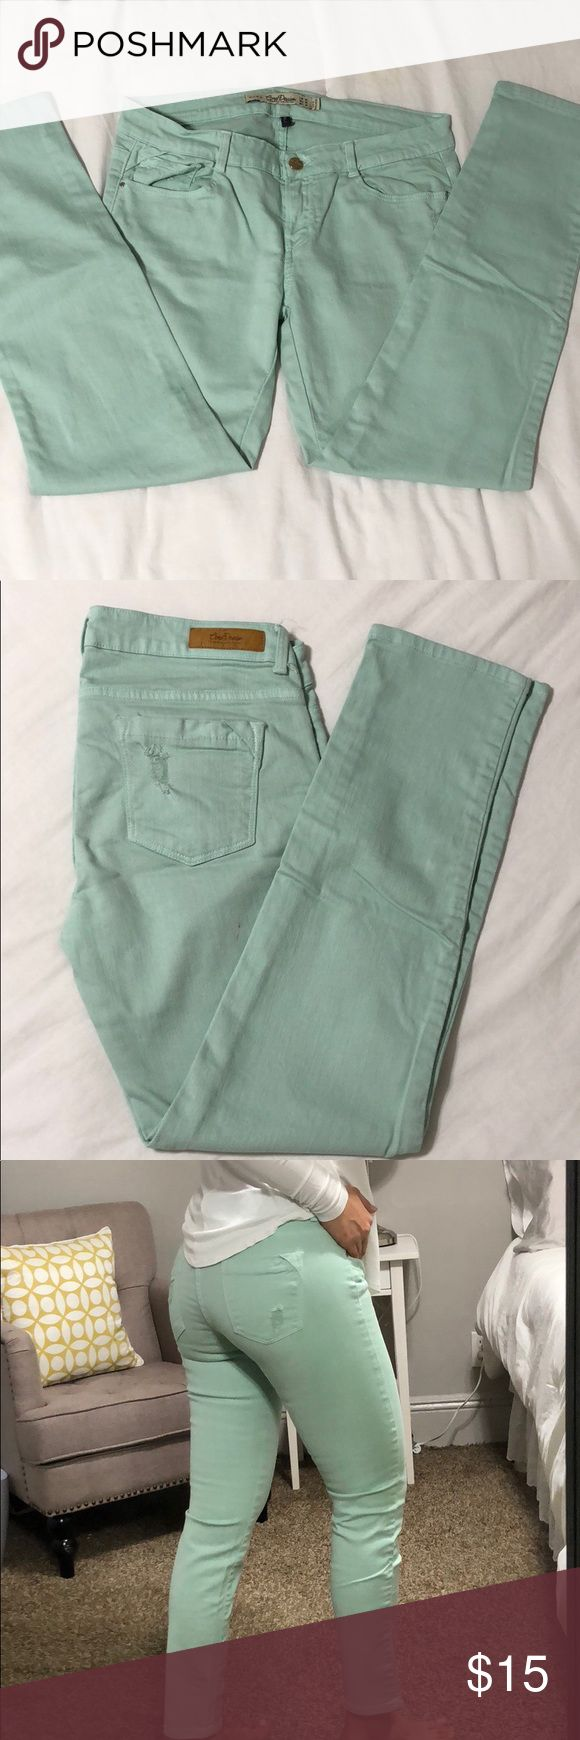 Beautiful Zara Jeans light Turquoise Great fit, stretchable Jeans, beautiful color, just two little stains lightly noticeable shown in the past two images. Moving Sale!!!! Everything must go... ✨🛍 Zara Jeans